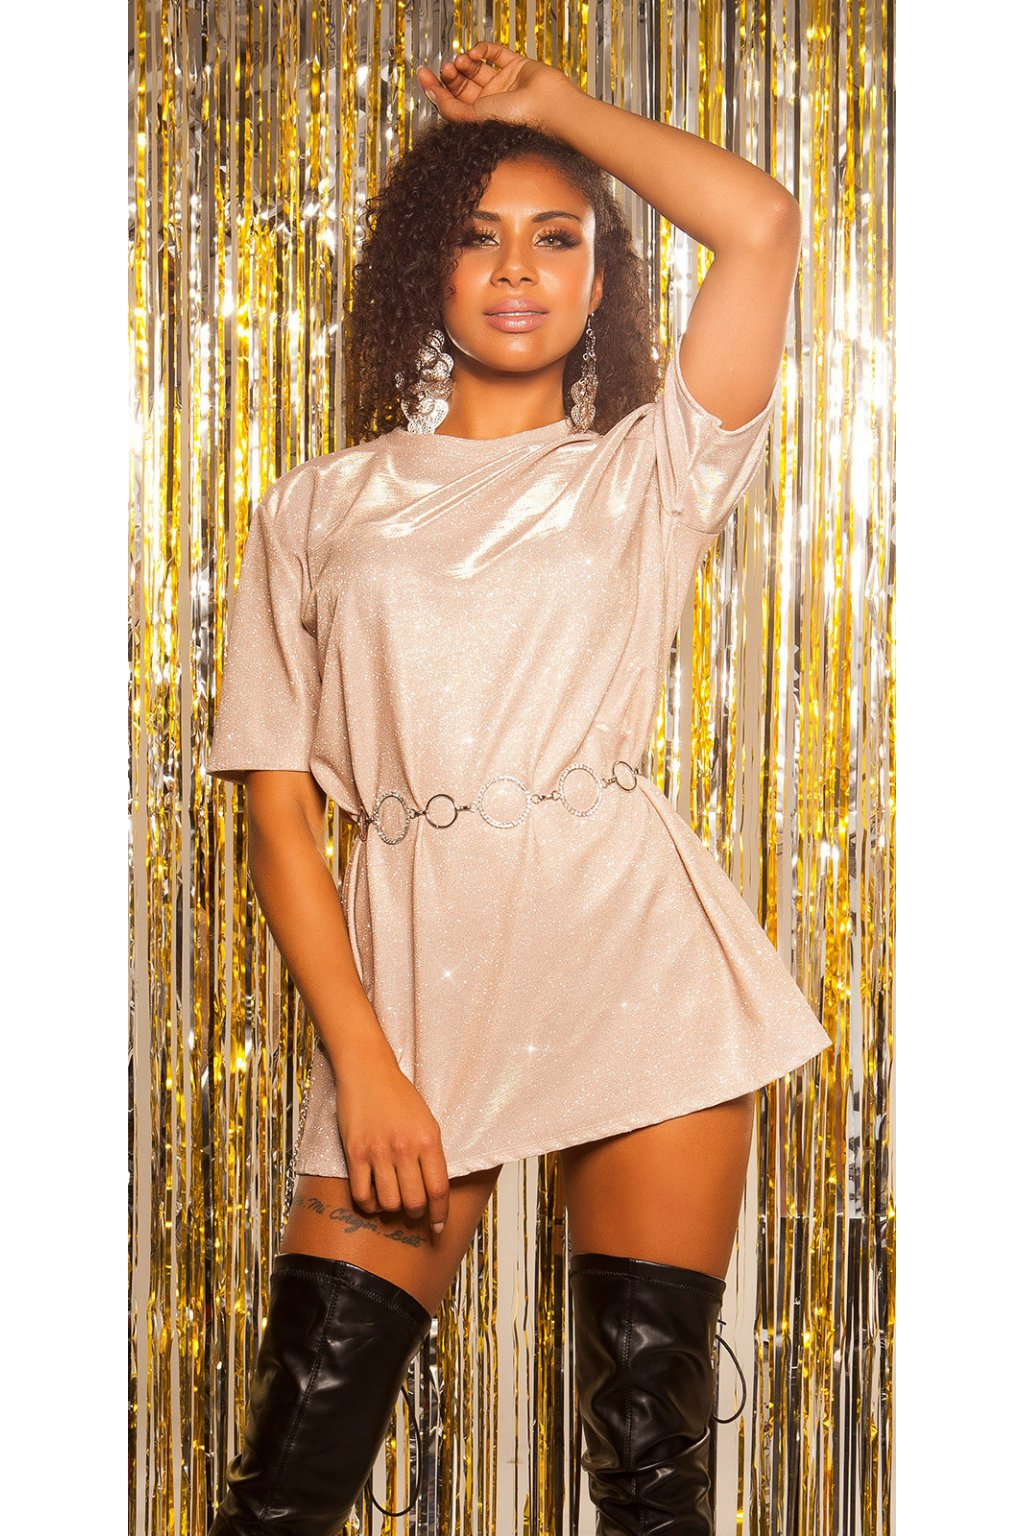 eeLeT s PaRTY glitter shirt dress Color ROSE Size Einheitsgroesse 0000SK11130 ROSE 55